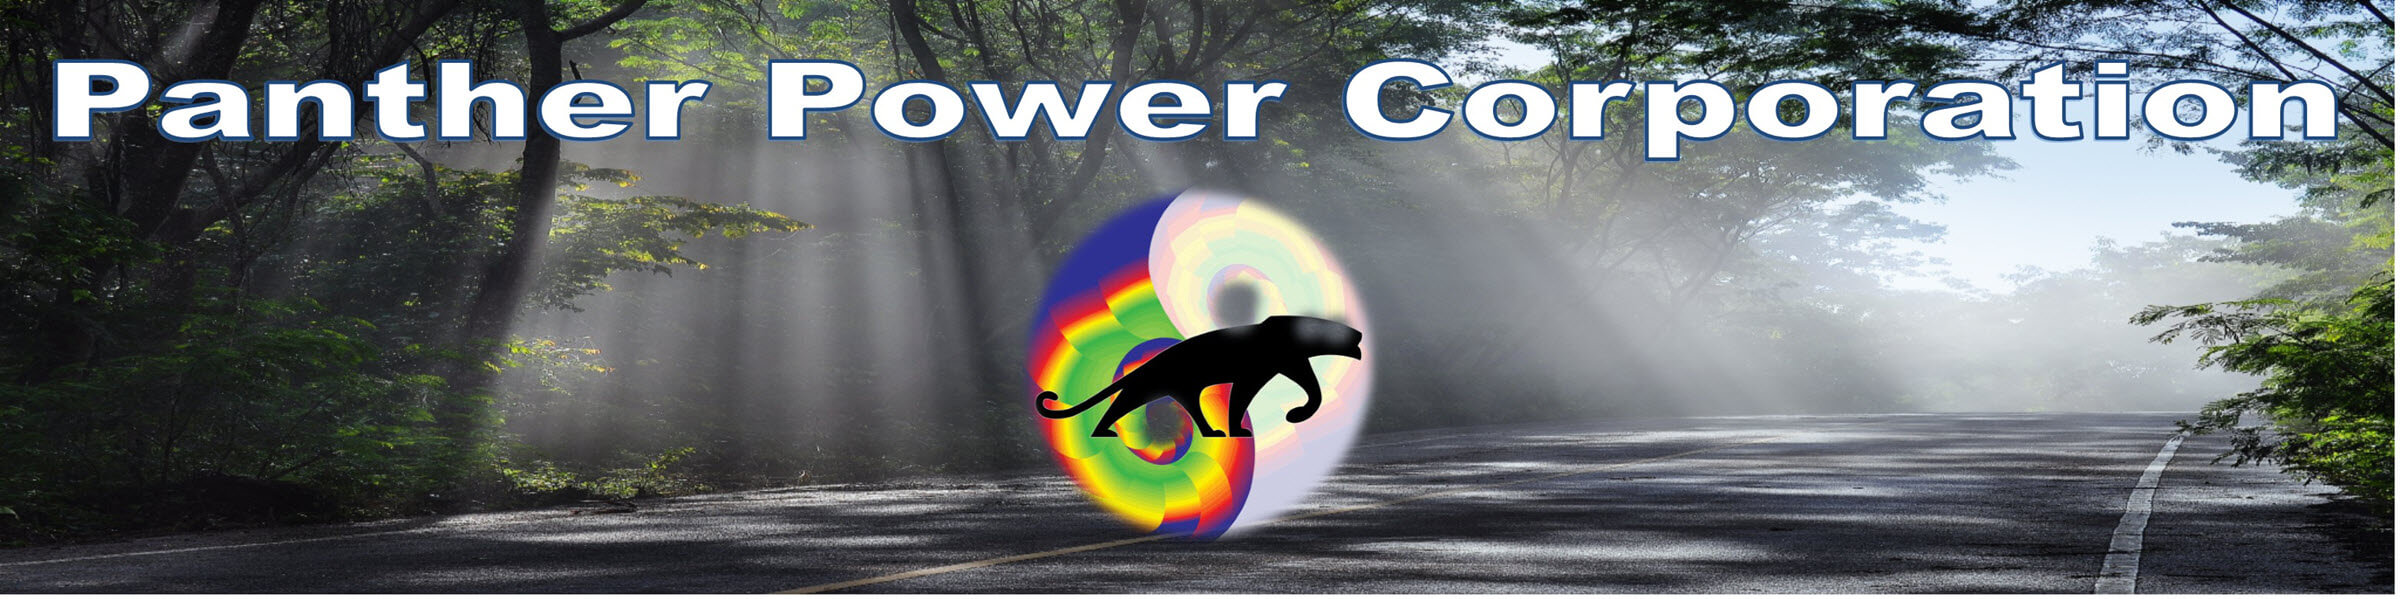 Panther Power Corporation Mobile Retina Logo